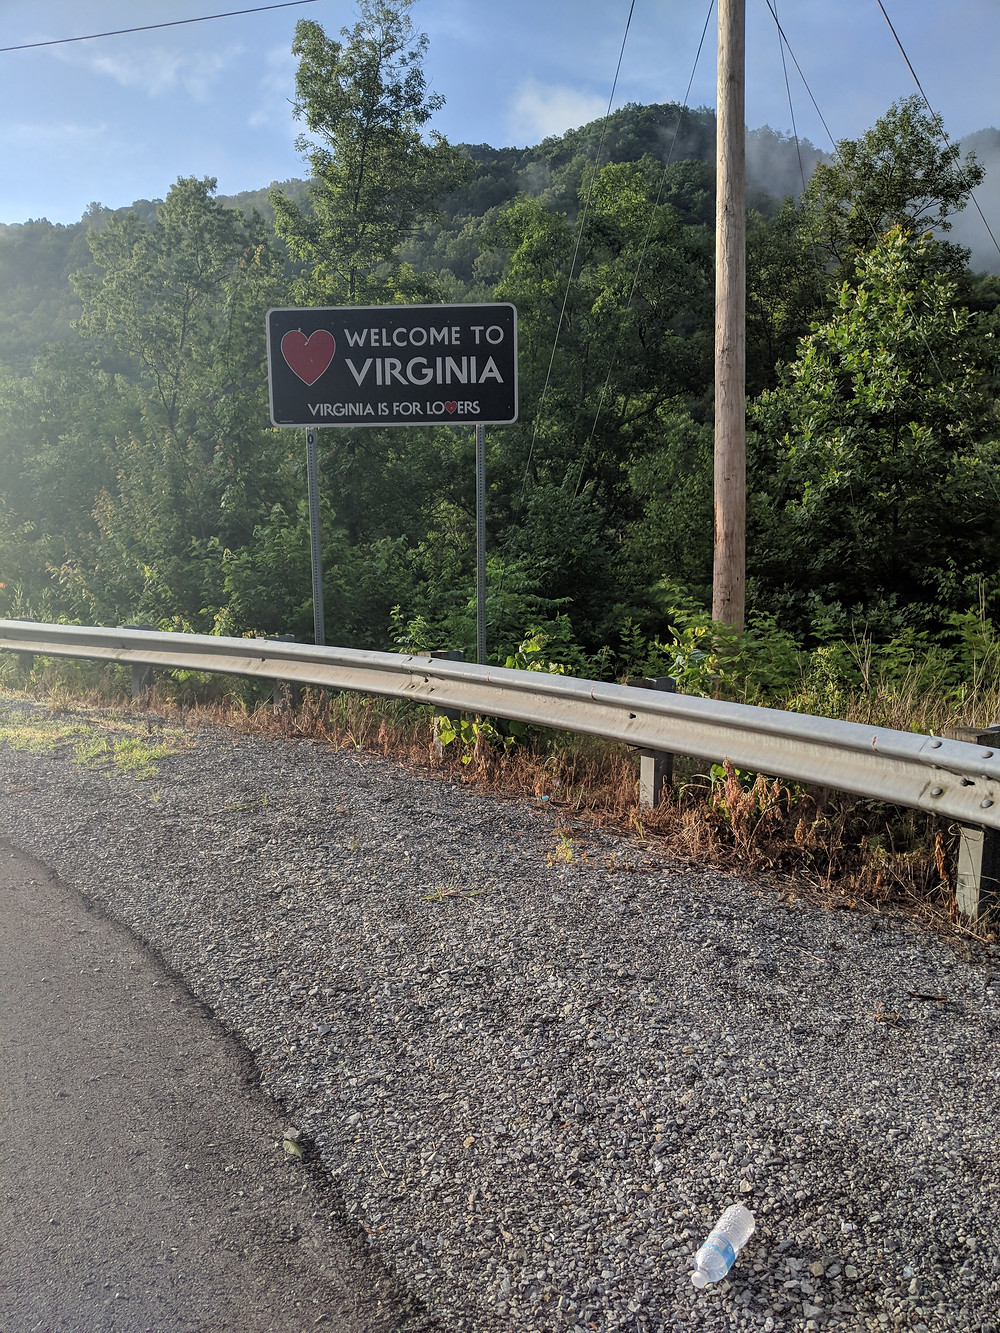 Last state sign! Leave your trash in Kentucky.